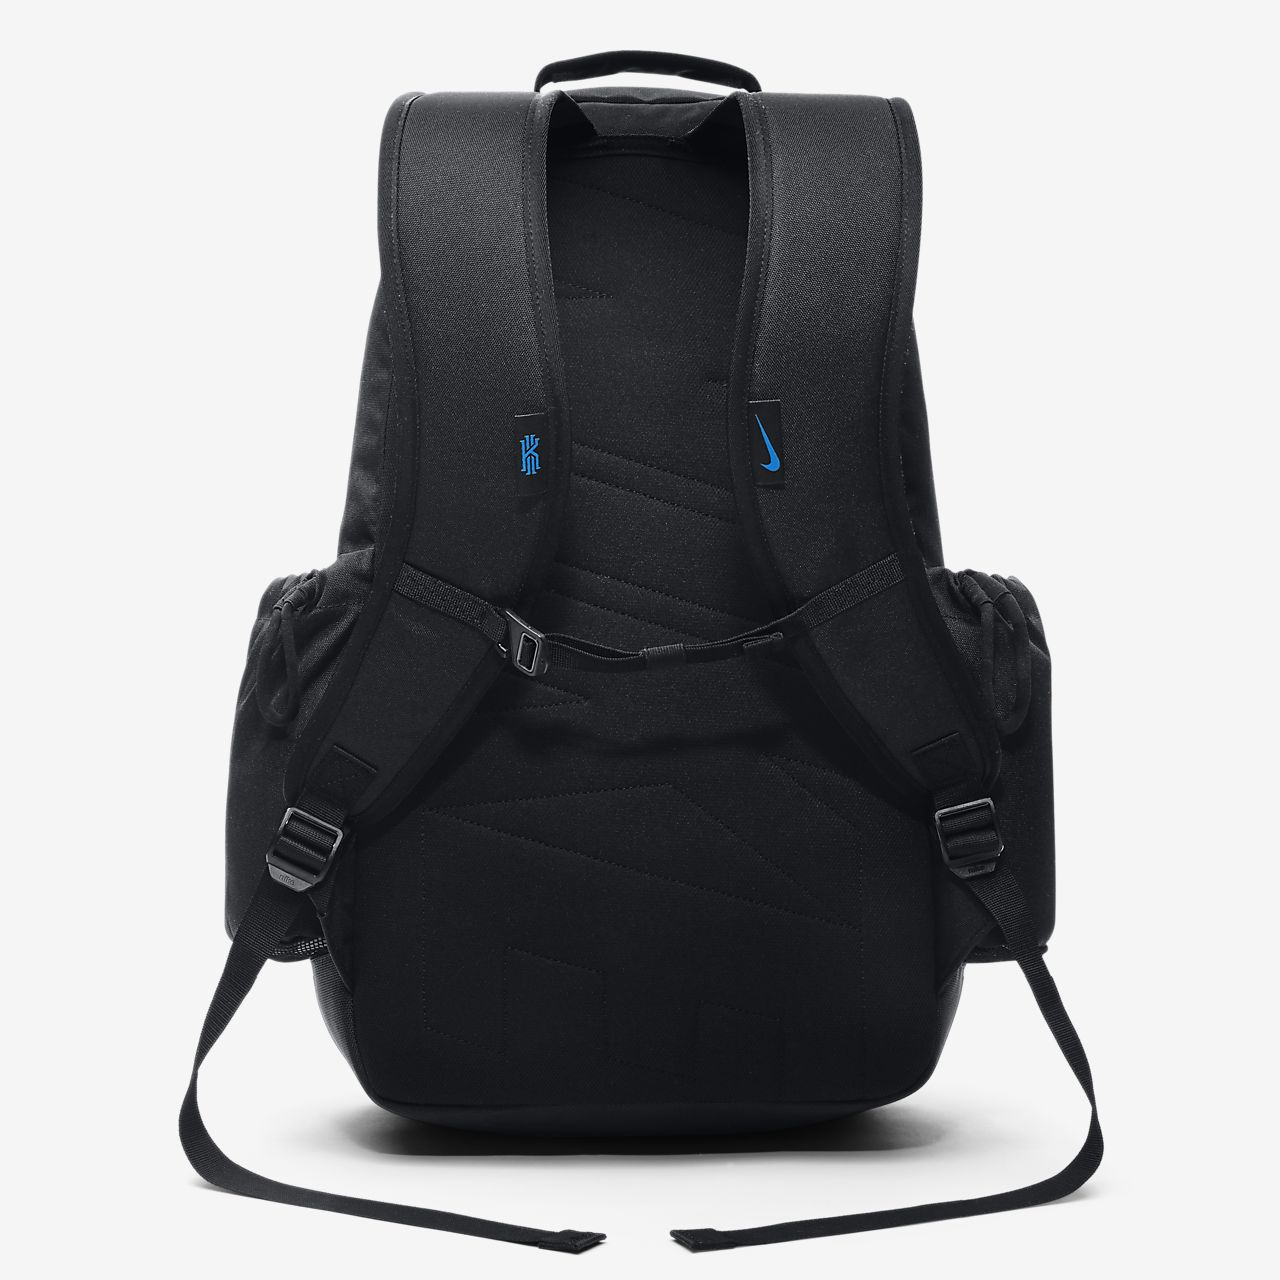 kyrie backpack review cheap   OFF47% The Largest Catalog Discounts fddfadaf25e18